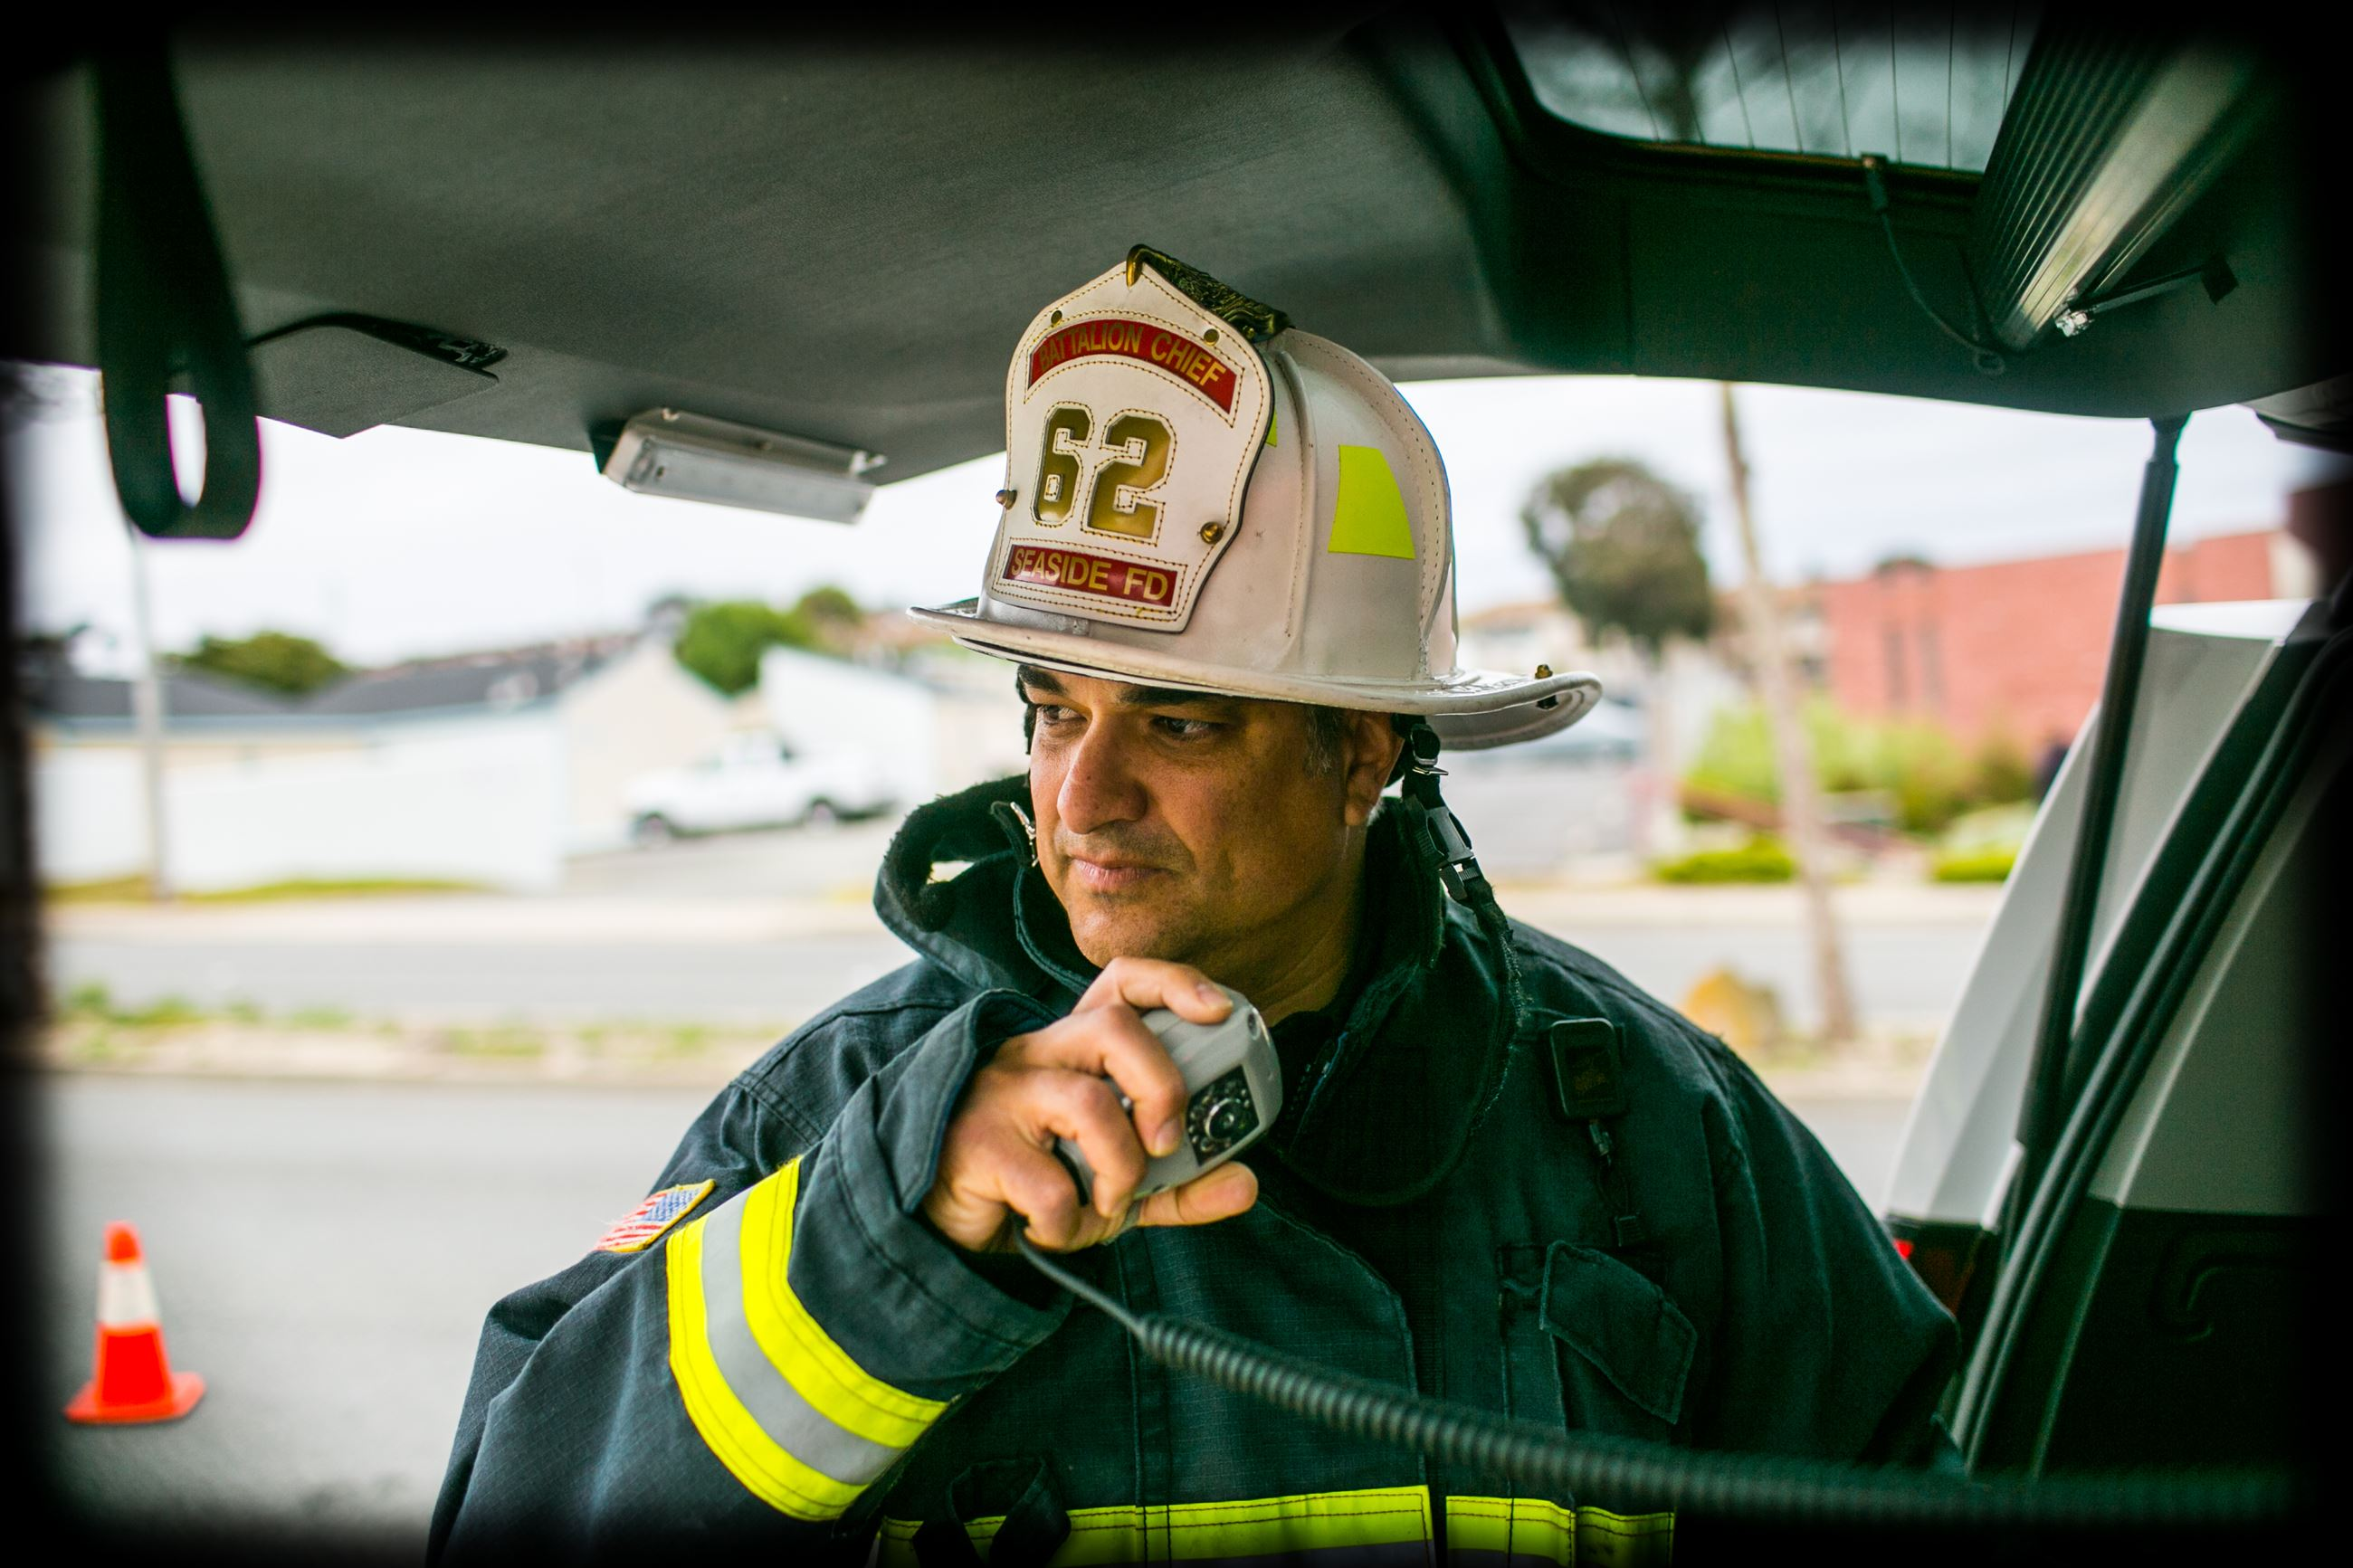 Seaside Fire Department Division Chief on radio